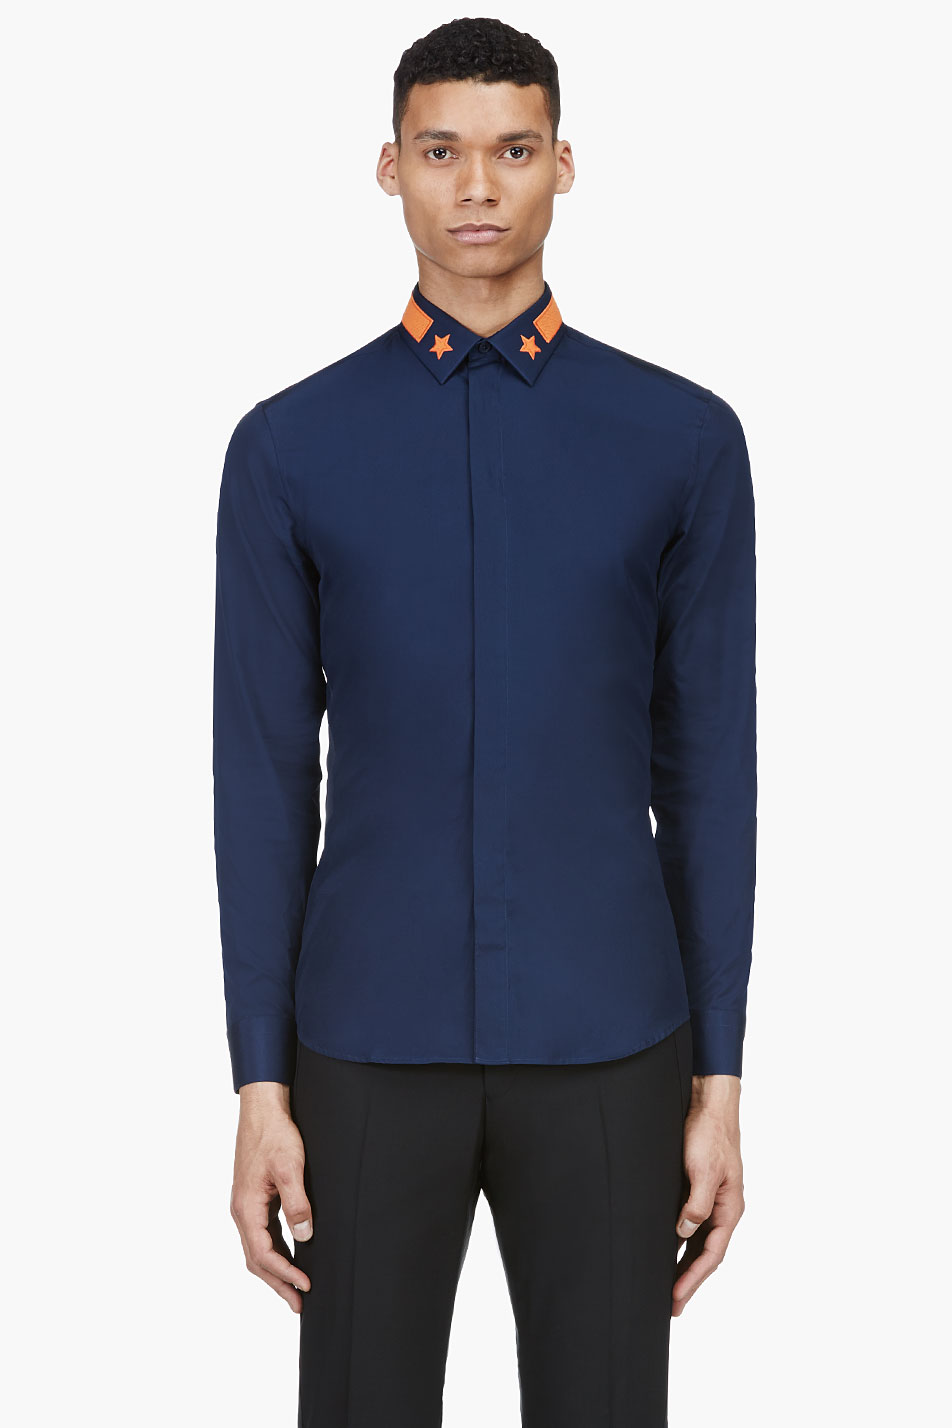 Star Appliqué Collar navy dress shirt menswear 1